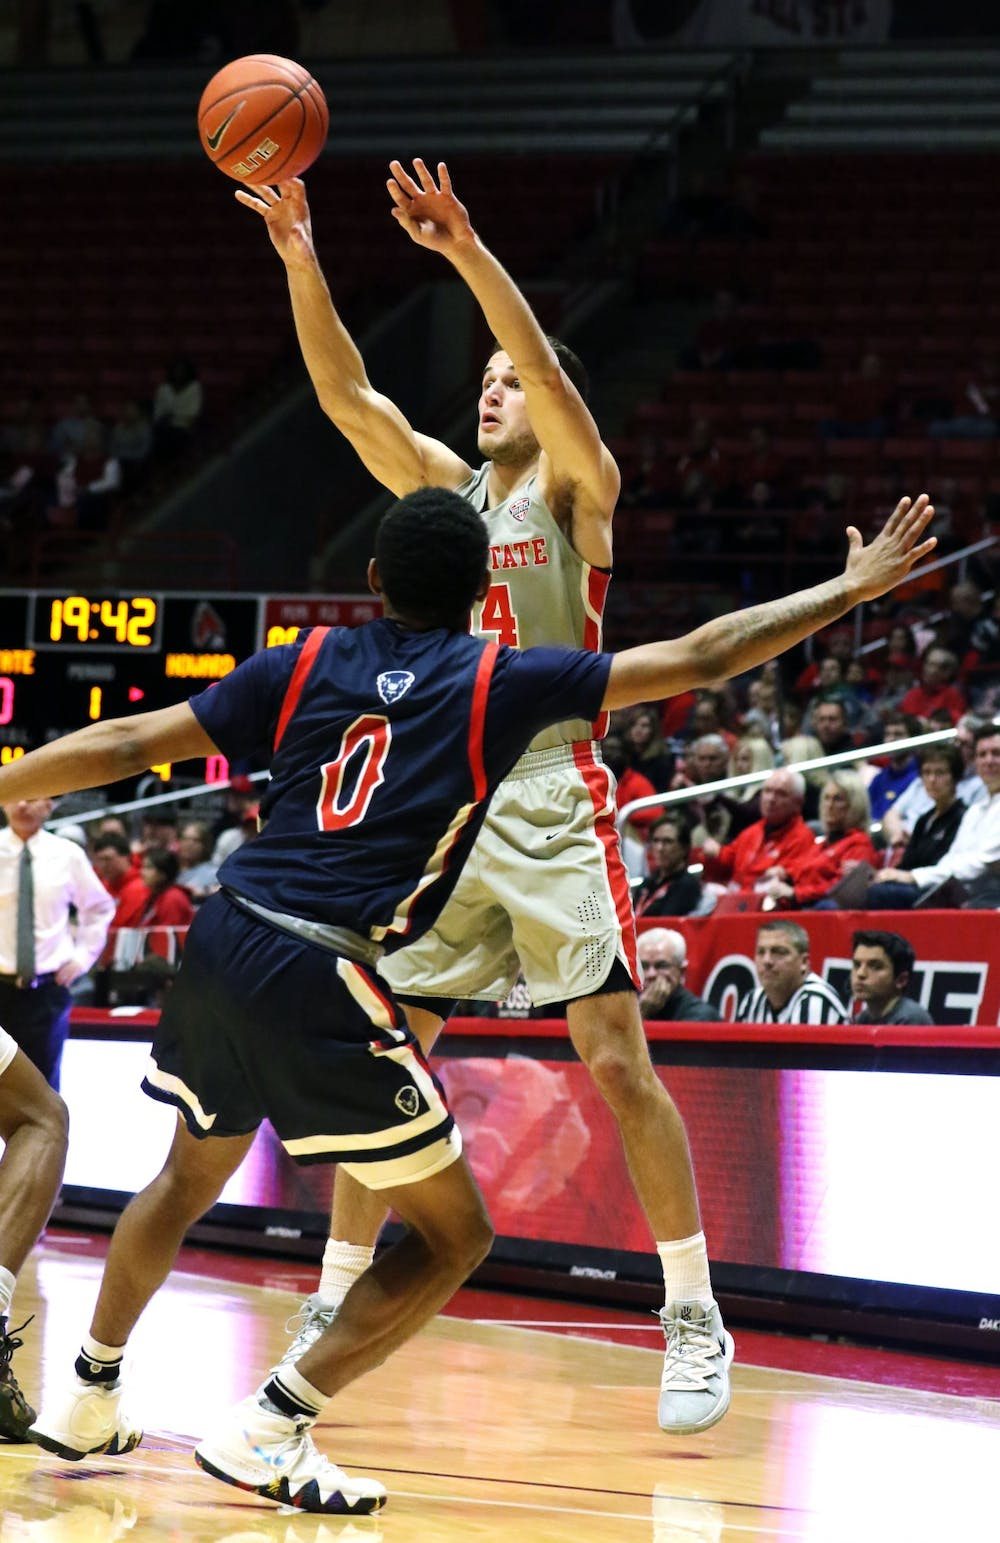 <p>Ball State senior forward Kyle Mallers passes the ball over Howard freshman guard Khalil Robinson during the Cardinals' game against the Bison Saturday, Nov. 23, 2019 at John E. Worthen Arena, Muncie, Ind. Mallers tied the program record with eight three pointers. <strong>Paige Grider, DN</strong></p>